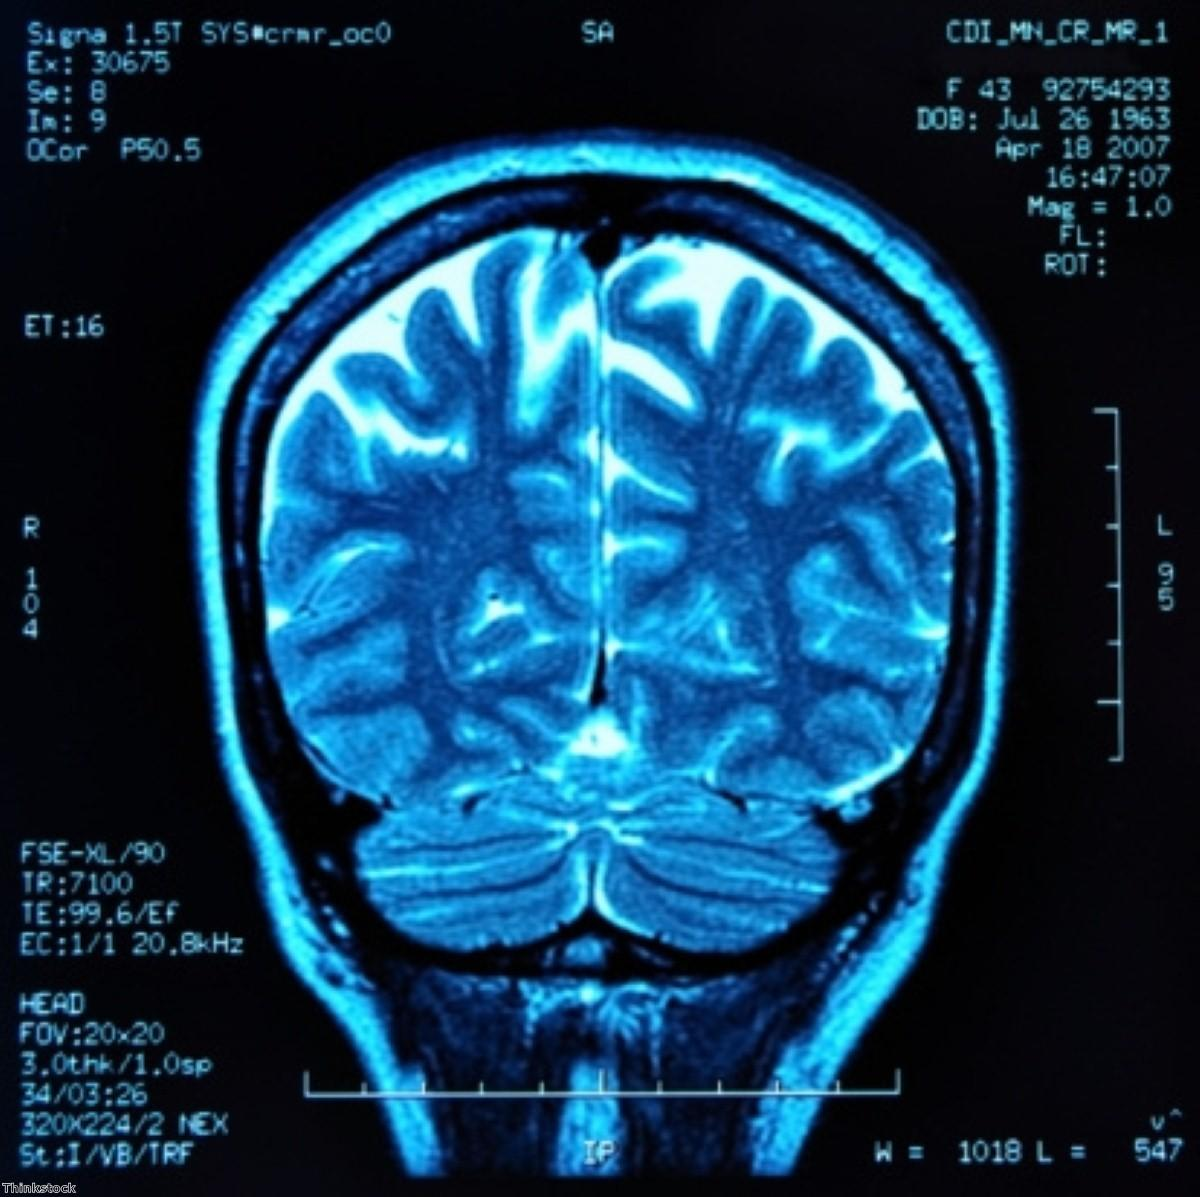 Electrical stimulation boosts memory, trial shows